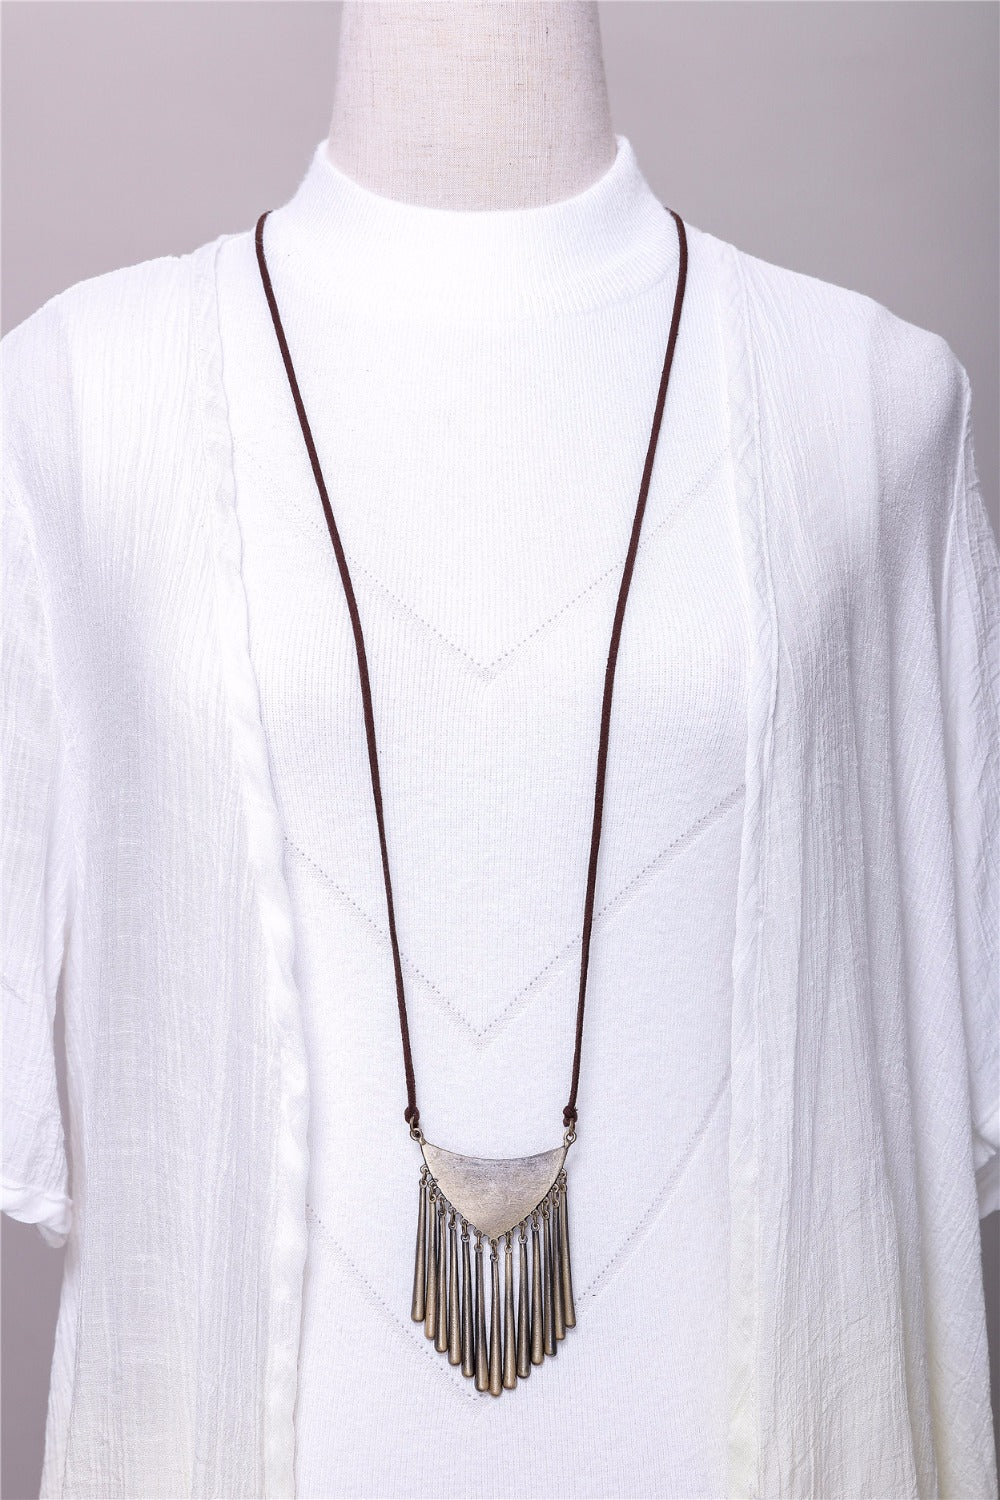 Long Vintage Necklace - Valerian Boutique